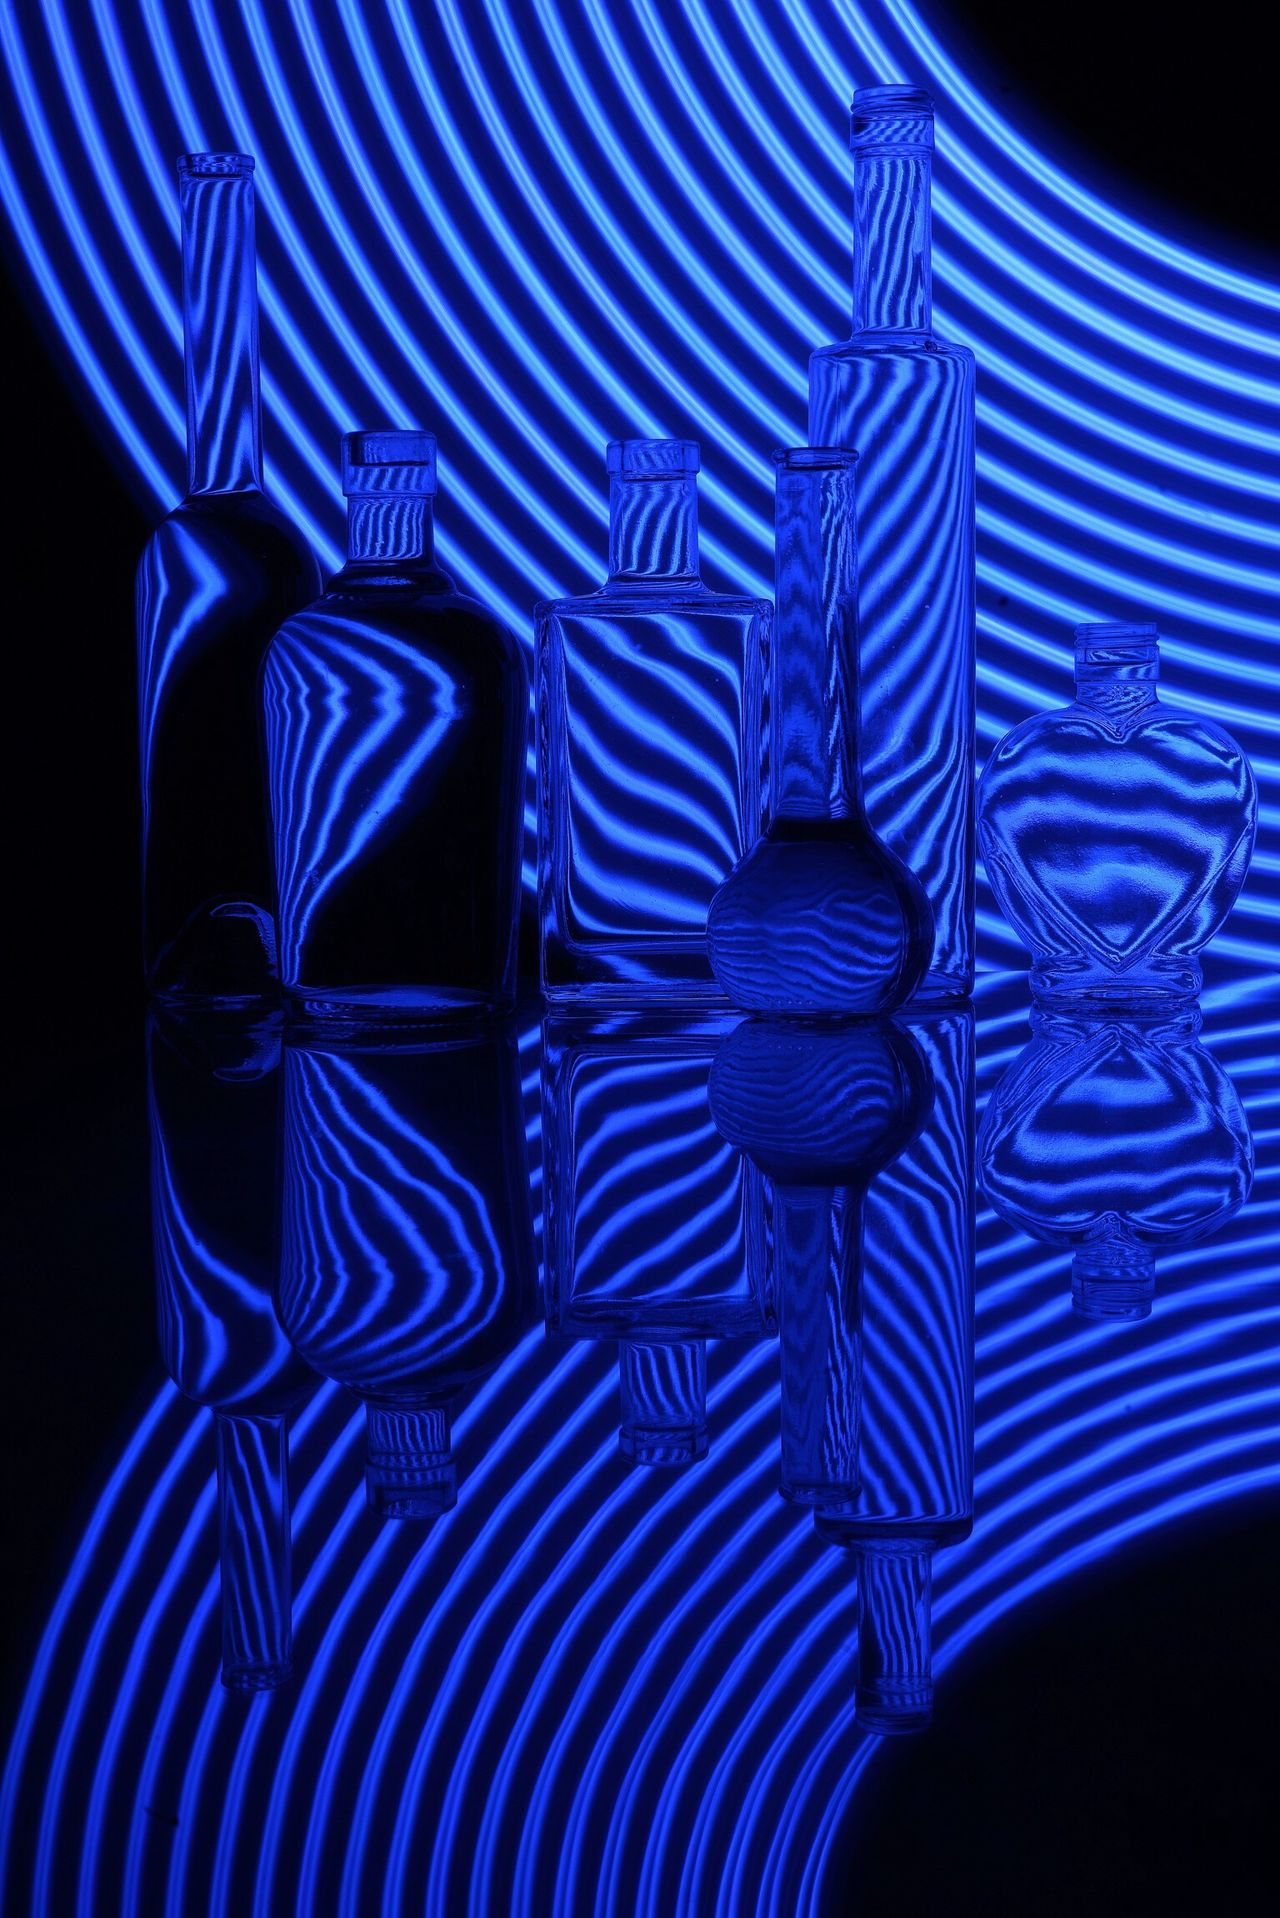 Blue Striped Pattern Red Celebration Close-up Abstract No People Outdoors Day Bottle Bottles Collection Art Creativity OpenEdit Tadaa Community Long Exposure